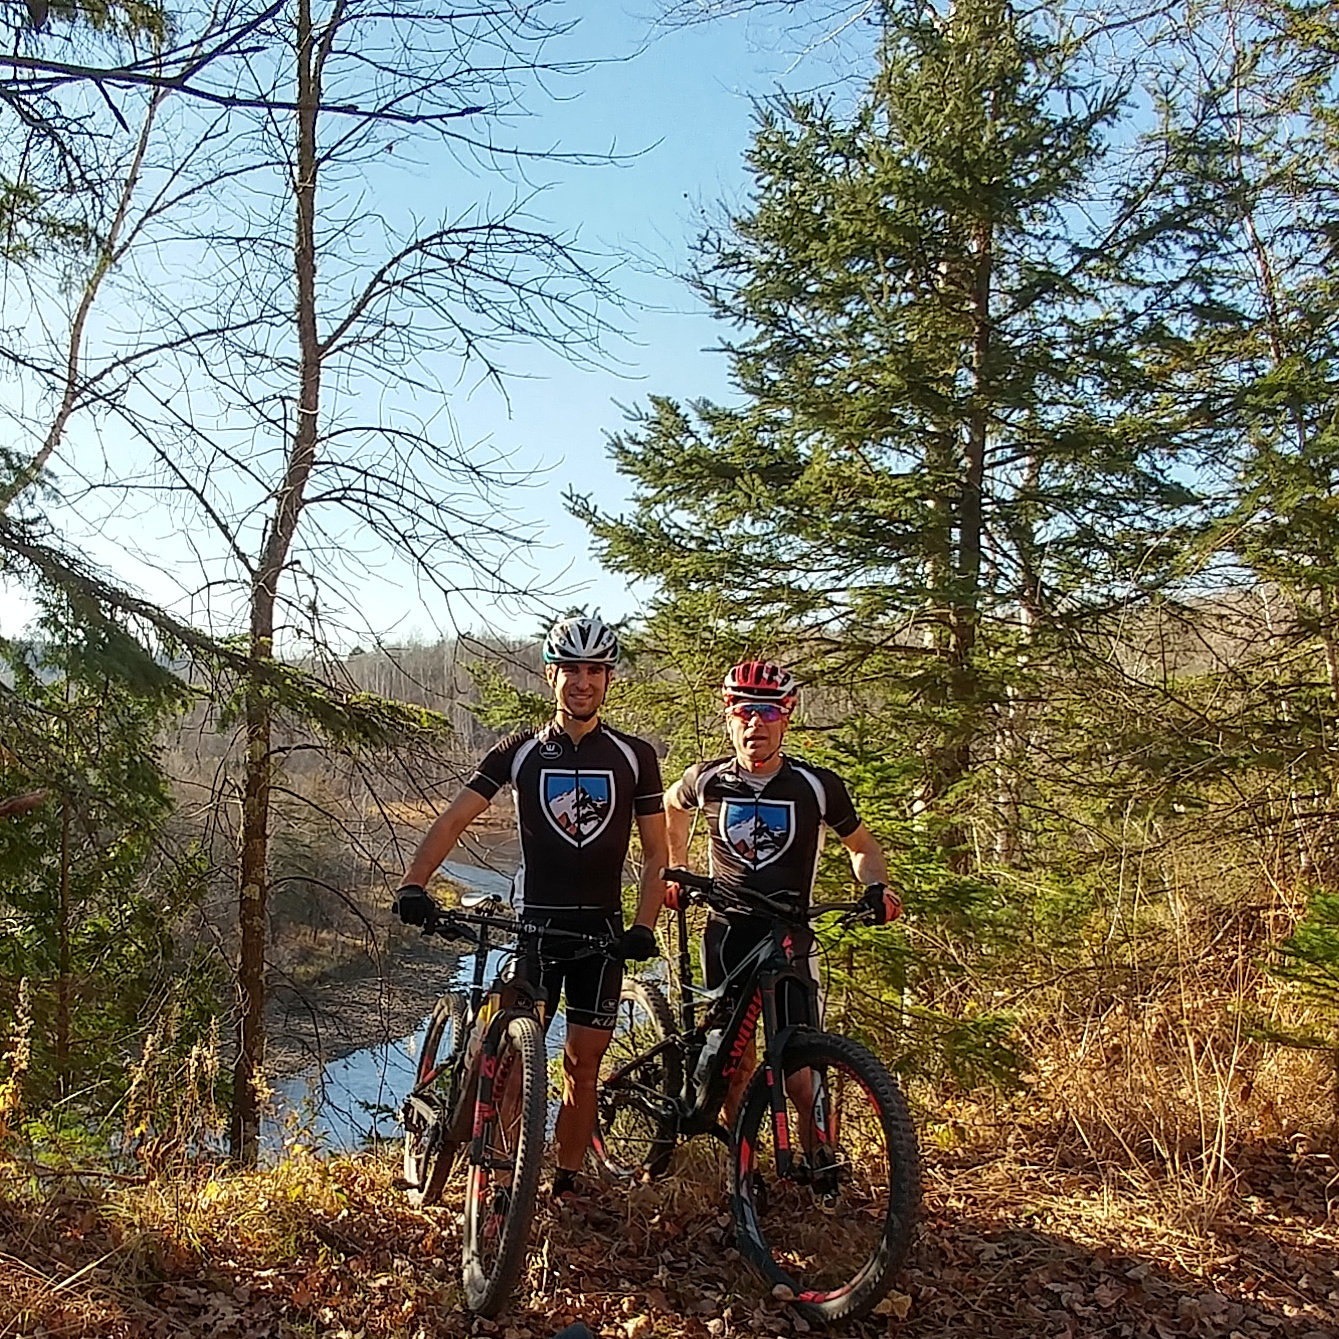 Two men from KUHL Bike Team stand next to their bycicles in a fall forest trail